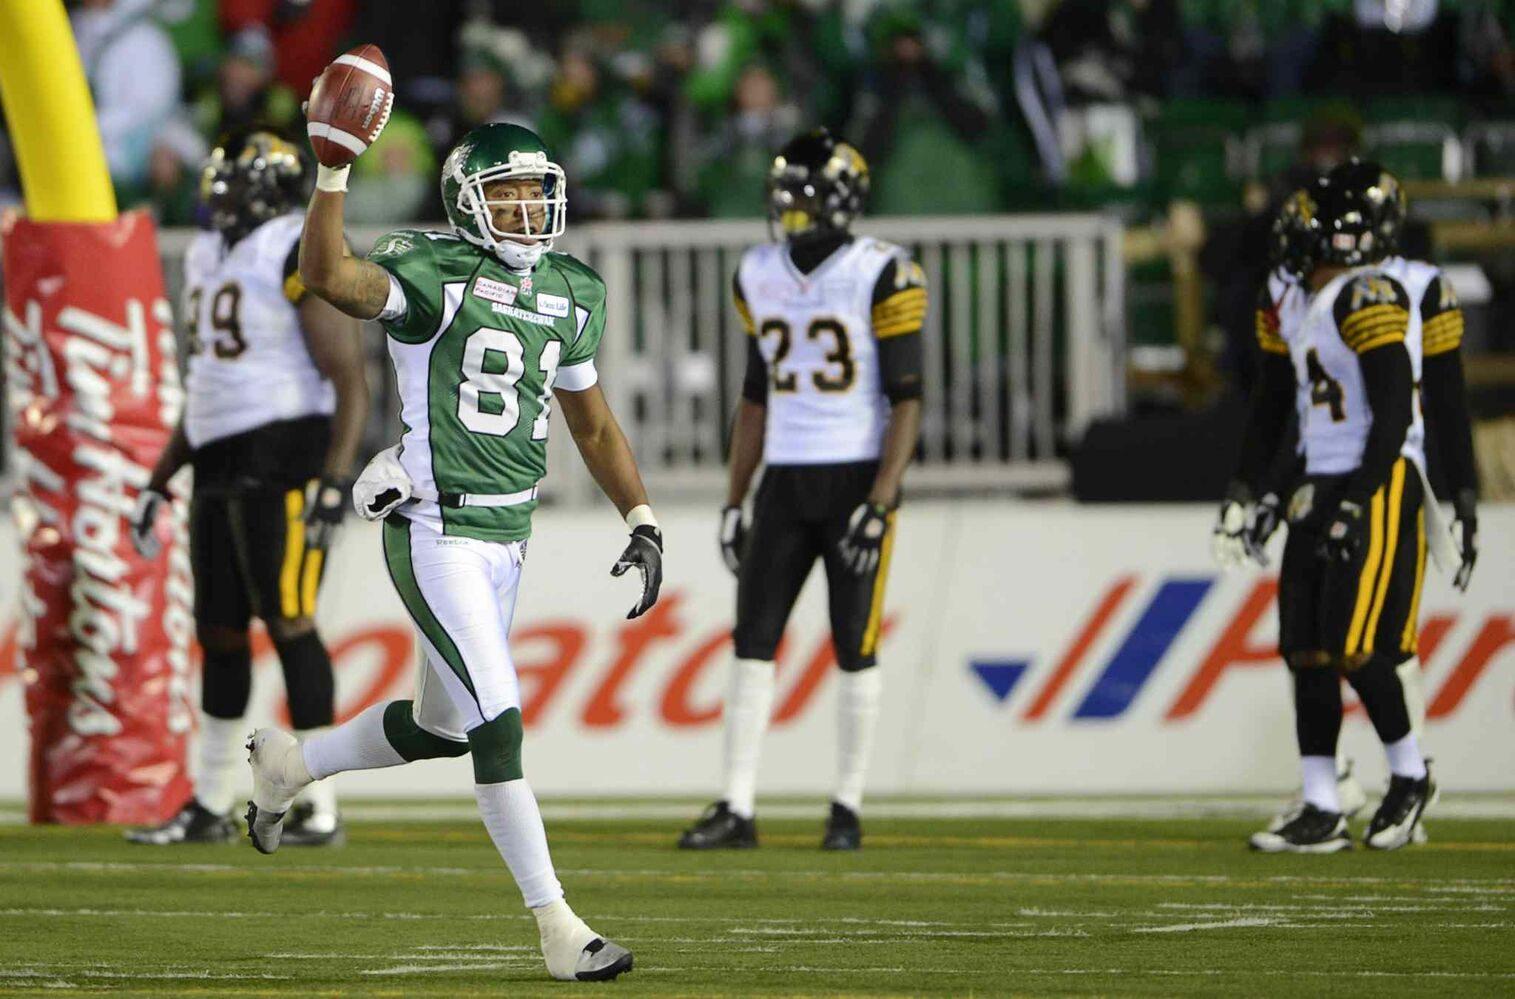 Saskatchewan Roughriders slotback Geroy Simon celebrates his second touchdown against the Hamilton Tiger-Cats during the second quarter.